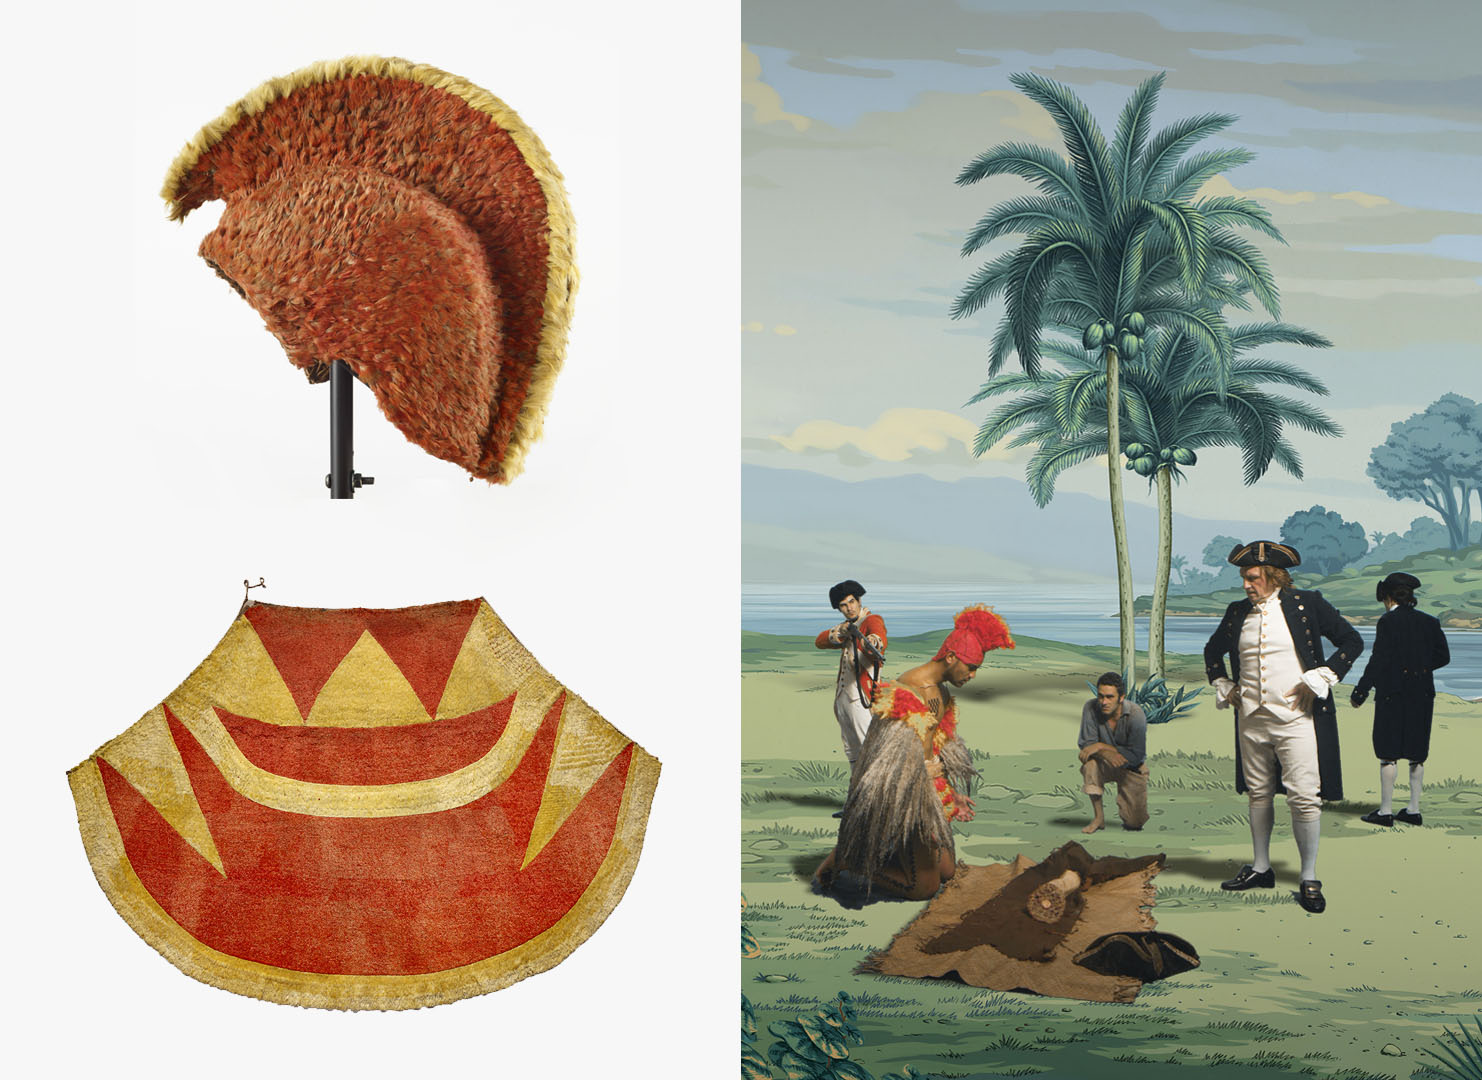 On the left is a bright orange feathered helmet and cloak, on the right is a still from Lisa Reihana's in Pursuit of Venus [infected] showing a man wearing these items